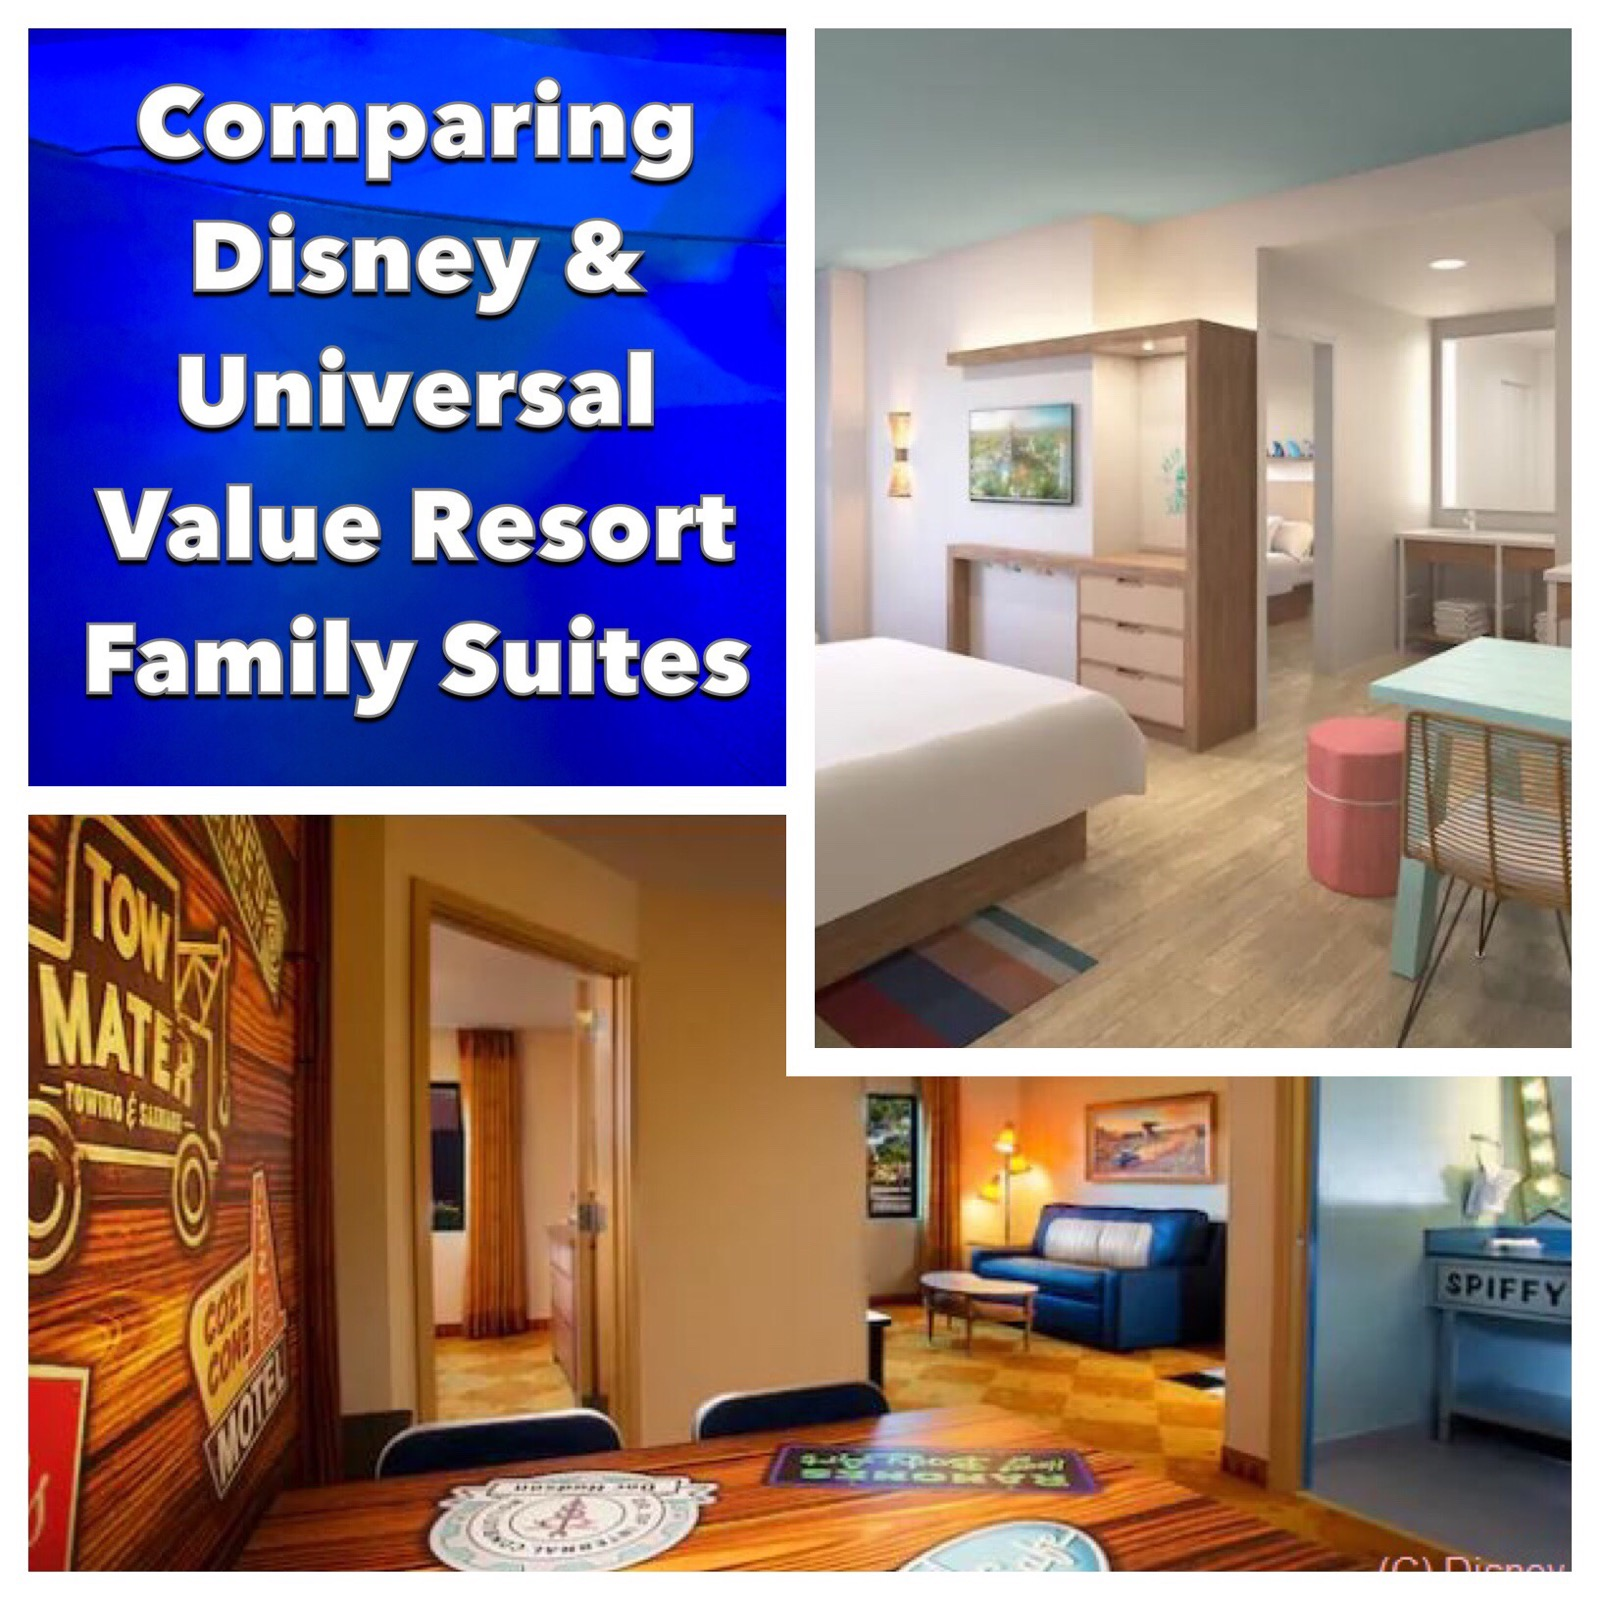 A comparison of Disney World and Universal Orlando Value Resort Family Suites - includes Disney's All-Star Music, Disney's Art of Animation, and Universal's Endless Summer Surfside Inn and Suites. #DisneyWorld #disneyhotels #UniversalOrlando